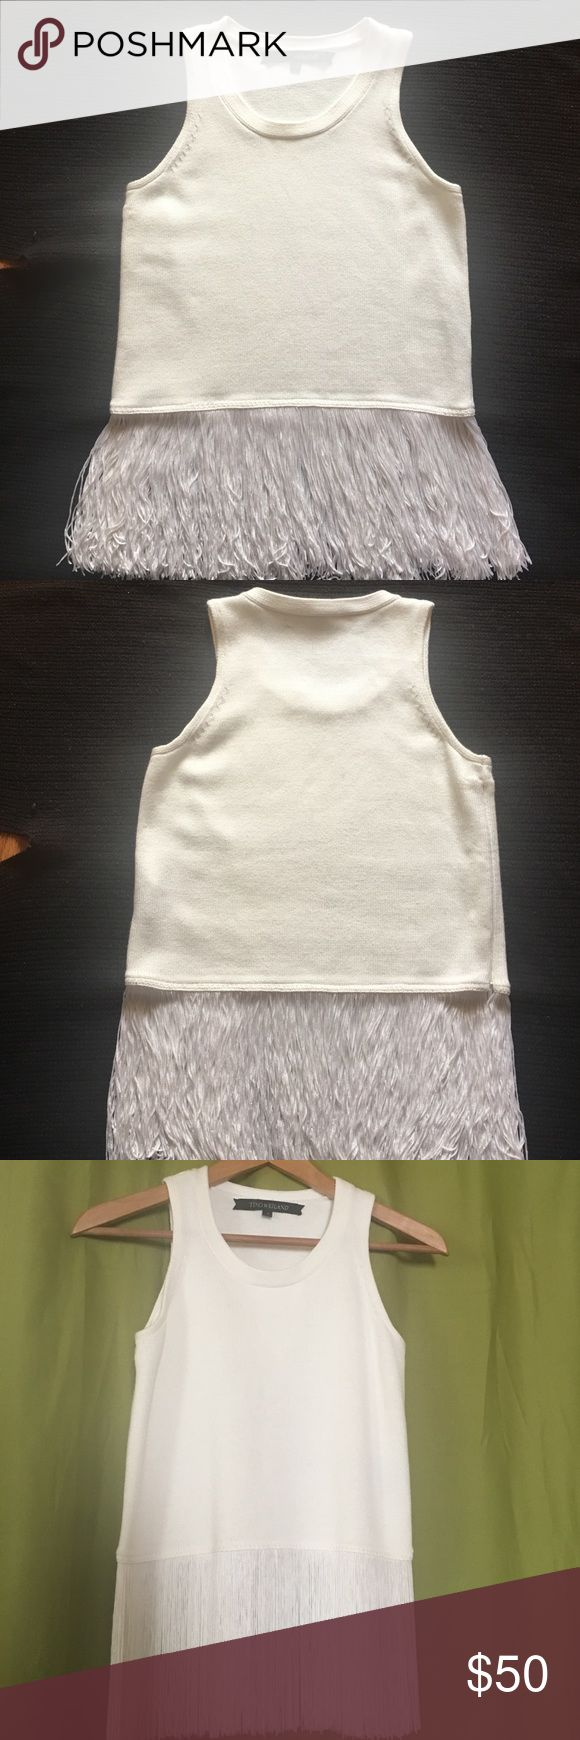 Timo Weiland White Fringe Knit Tank This fringe top is super soft and comfortable to wear, it has a side zipper for easy on-off access. Fringe is tangle, knot free, no missing pieces. Ready to wear.....stain and smell free, only tried on, never worn, but no tags. Would look great with some jeans or a pretty skirt...or a leather jacket and some leggings! Timo Weiland Tops Tank Tops